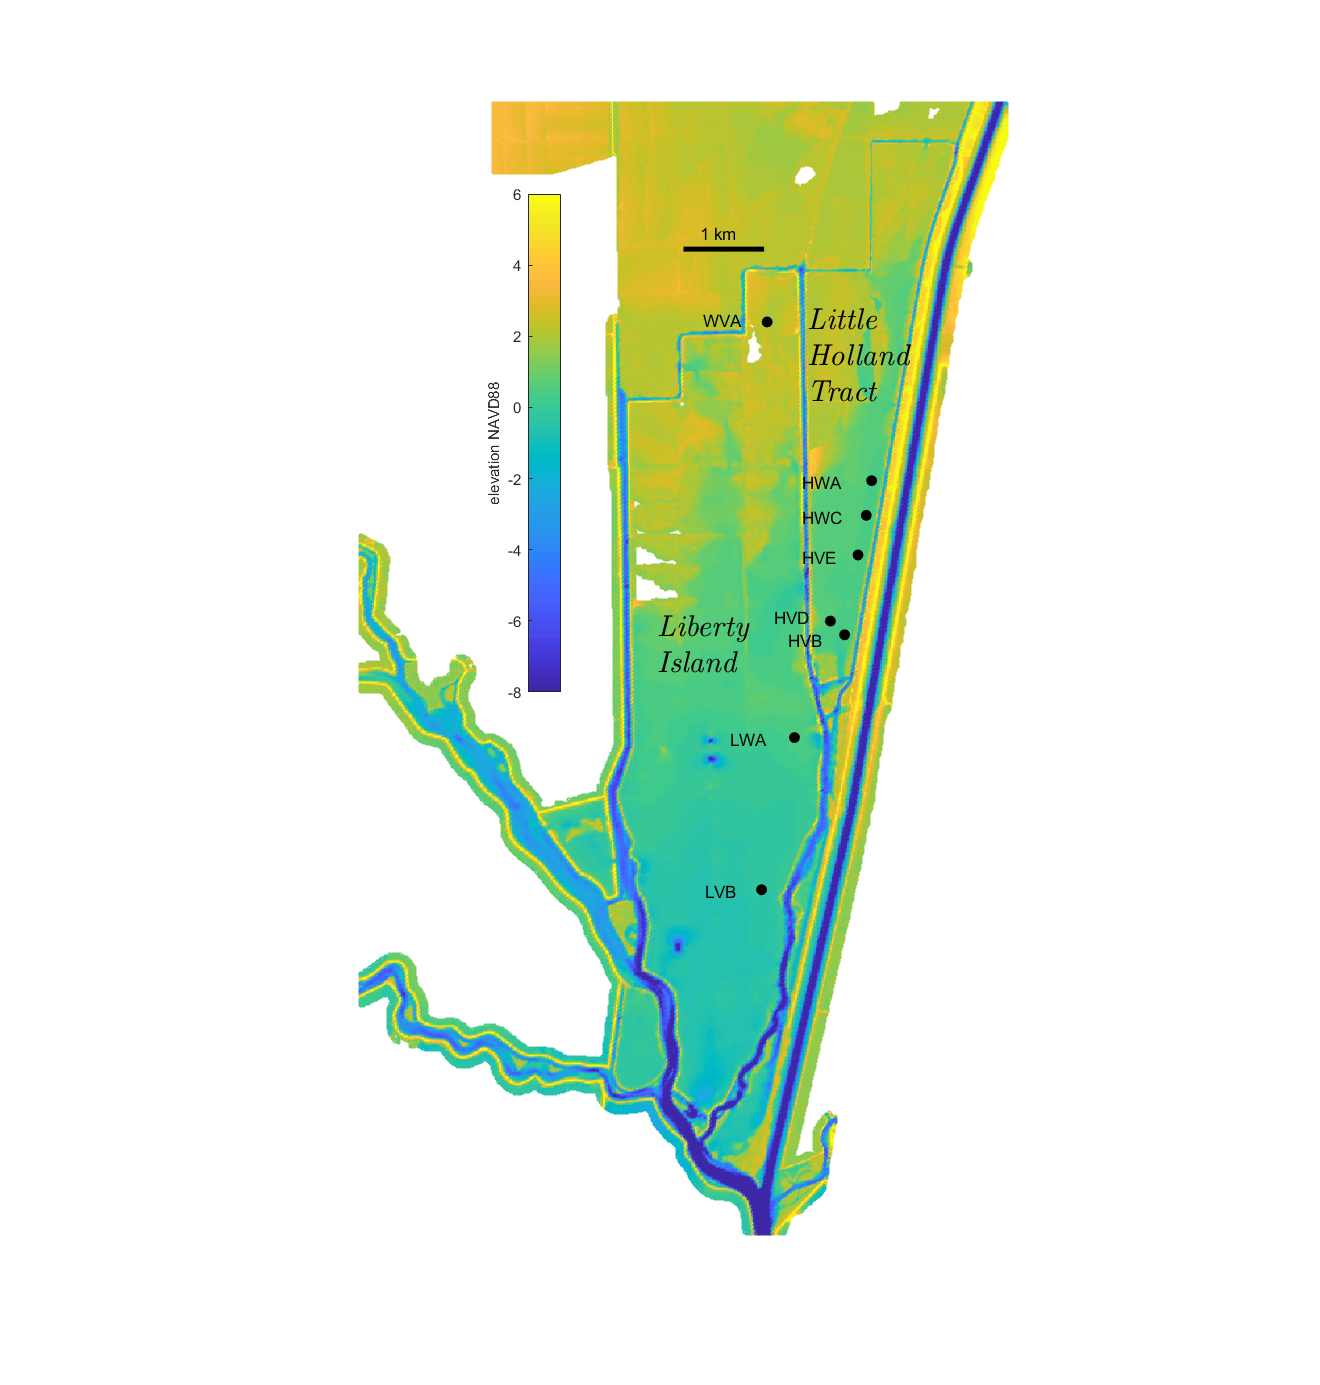 Map of Liberty Island and Little Holland Tract in the Sacramento-San Joaquin Delta showing locations of sampling stations.